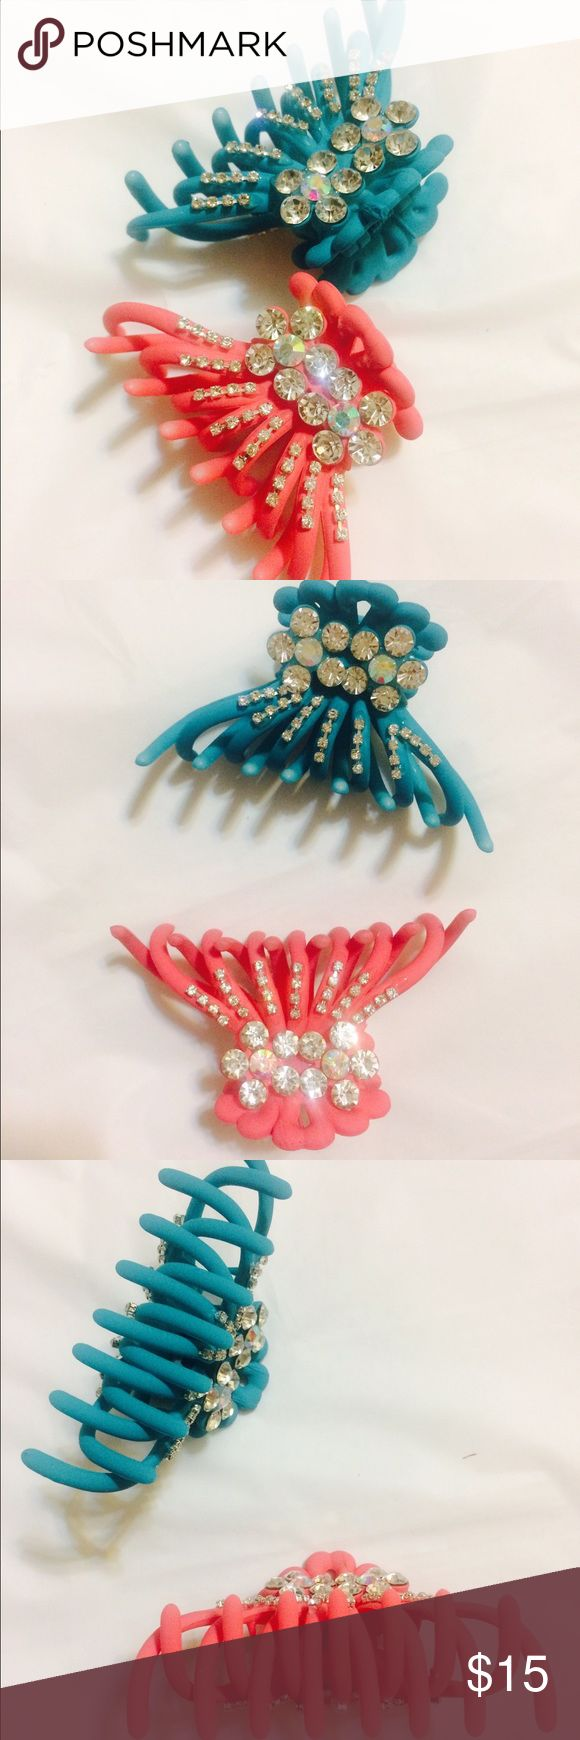 😎GREAT CLIPS HAIR CLIPS price for 2 😁 Beautiful medium size solid colors hair clip with Studded Fashion Diamond to give it rich look. Open for Offers ;) Accessories Hair Accessories